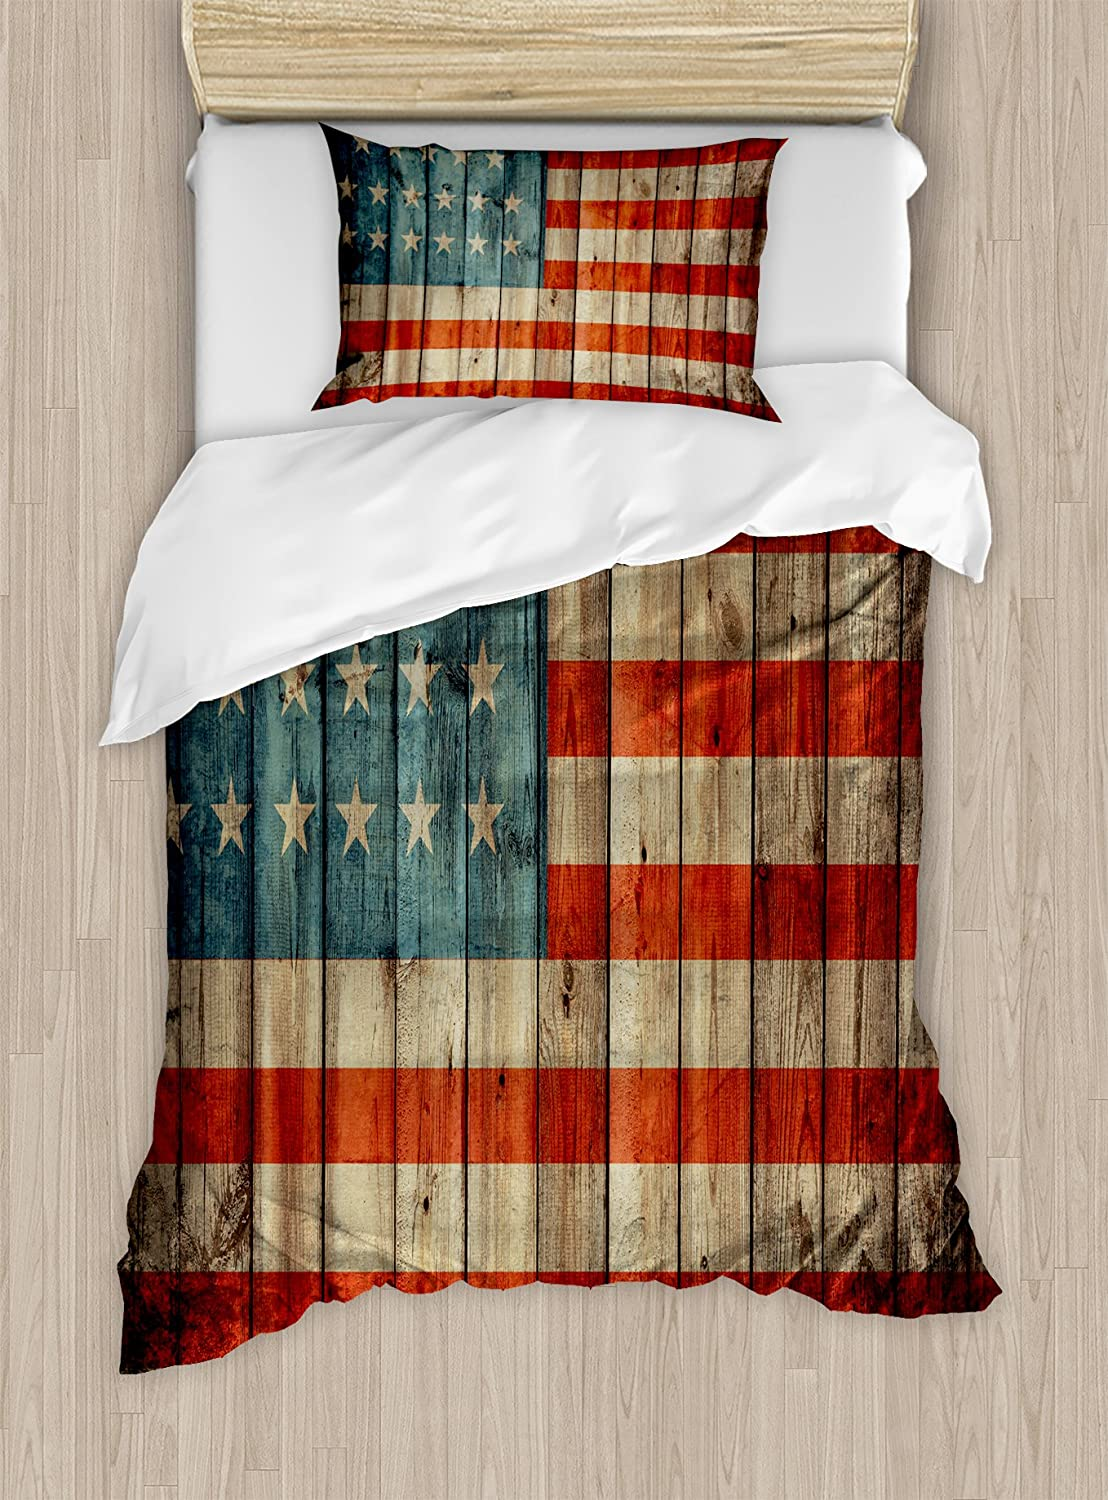 Ambesonne USA Duvet Cover Set, Fourth of July Independence Day Painted Old Wooden Rustic Background Patriot, Decorative 2 Piece Bedding Set with 1 Pillow Sham, Twin Size, Blue Red